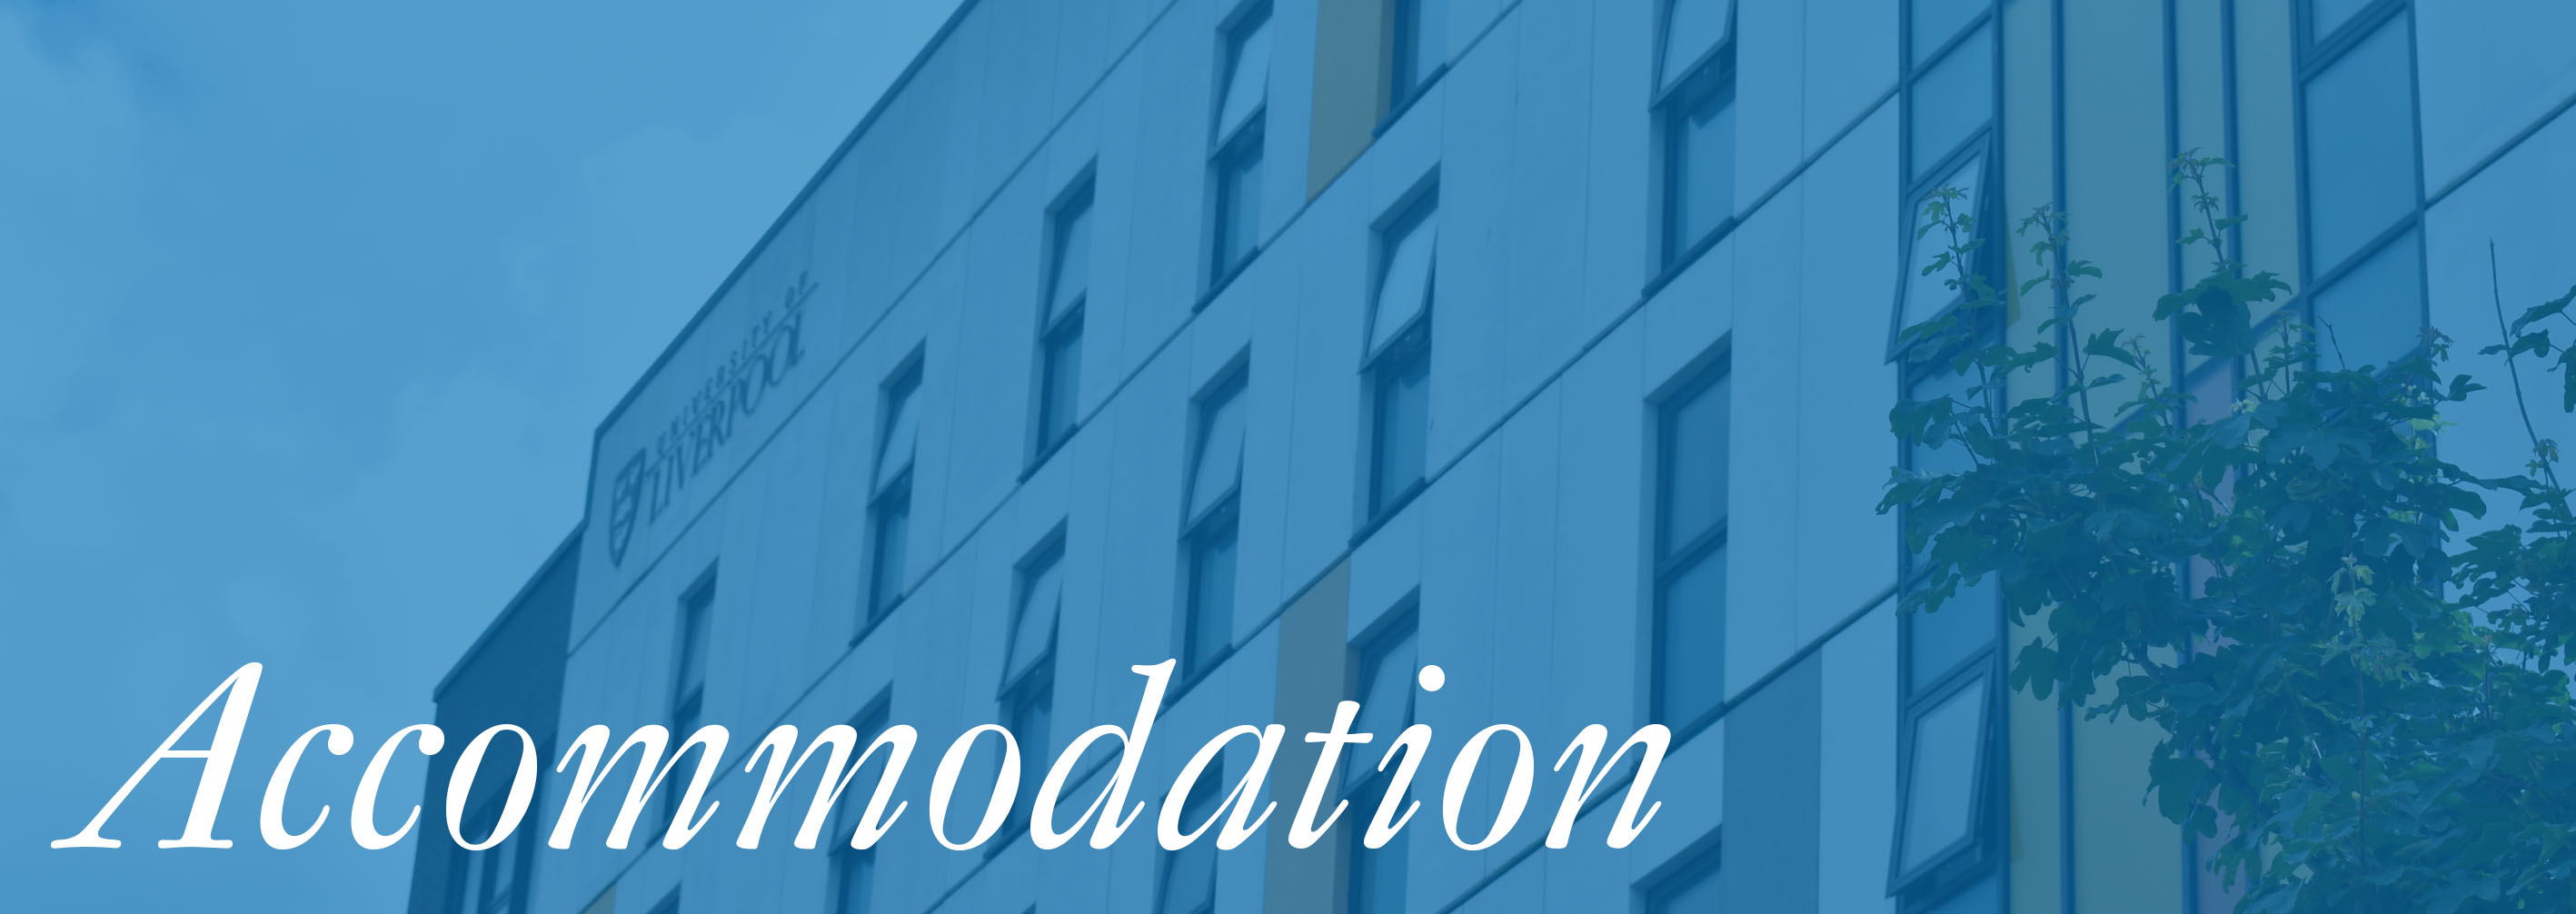 Accommodation- banner image